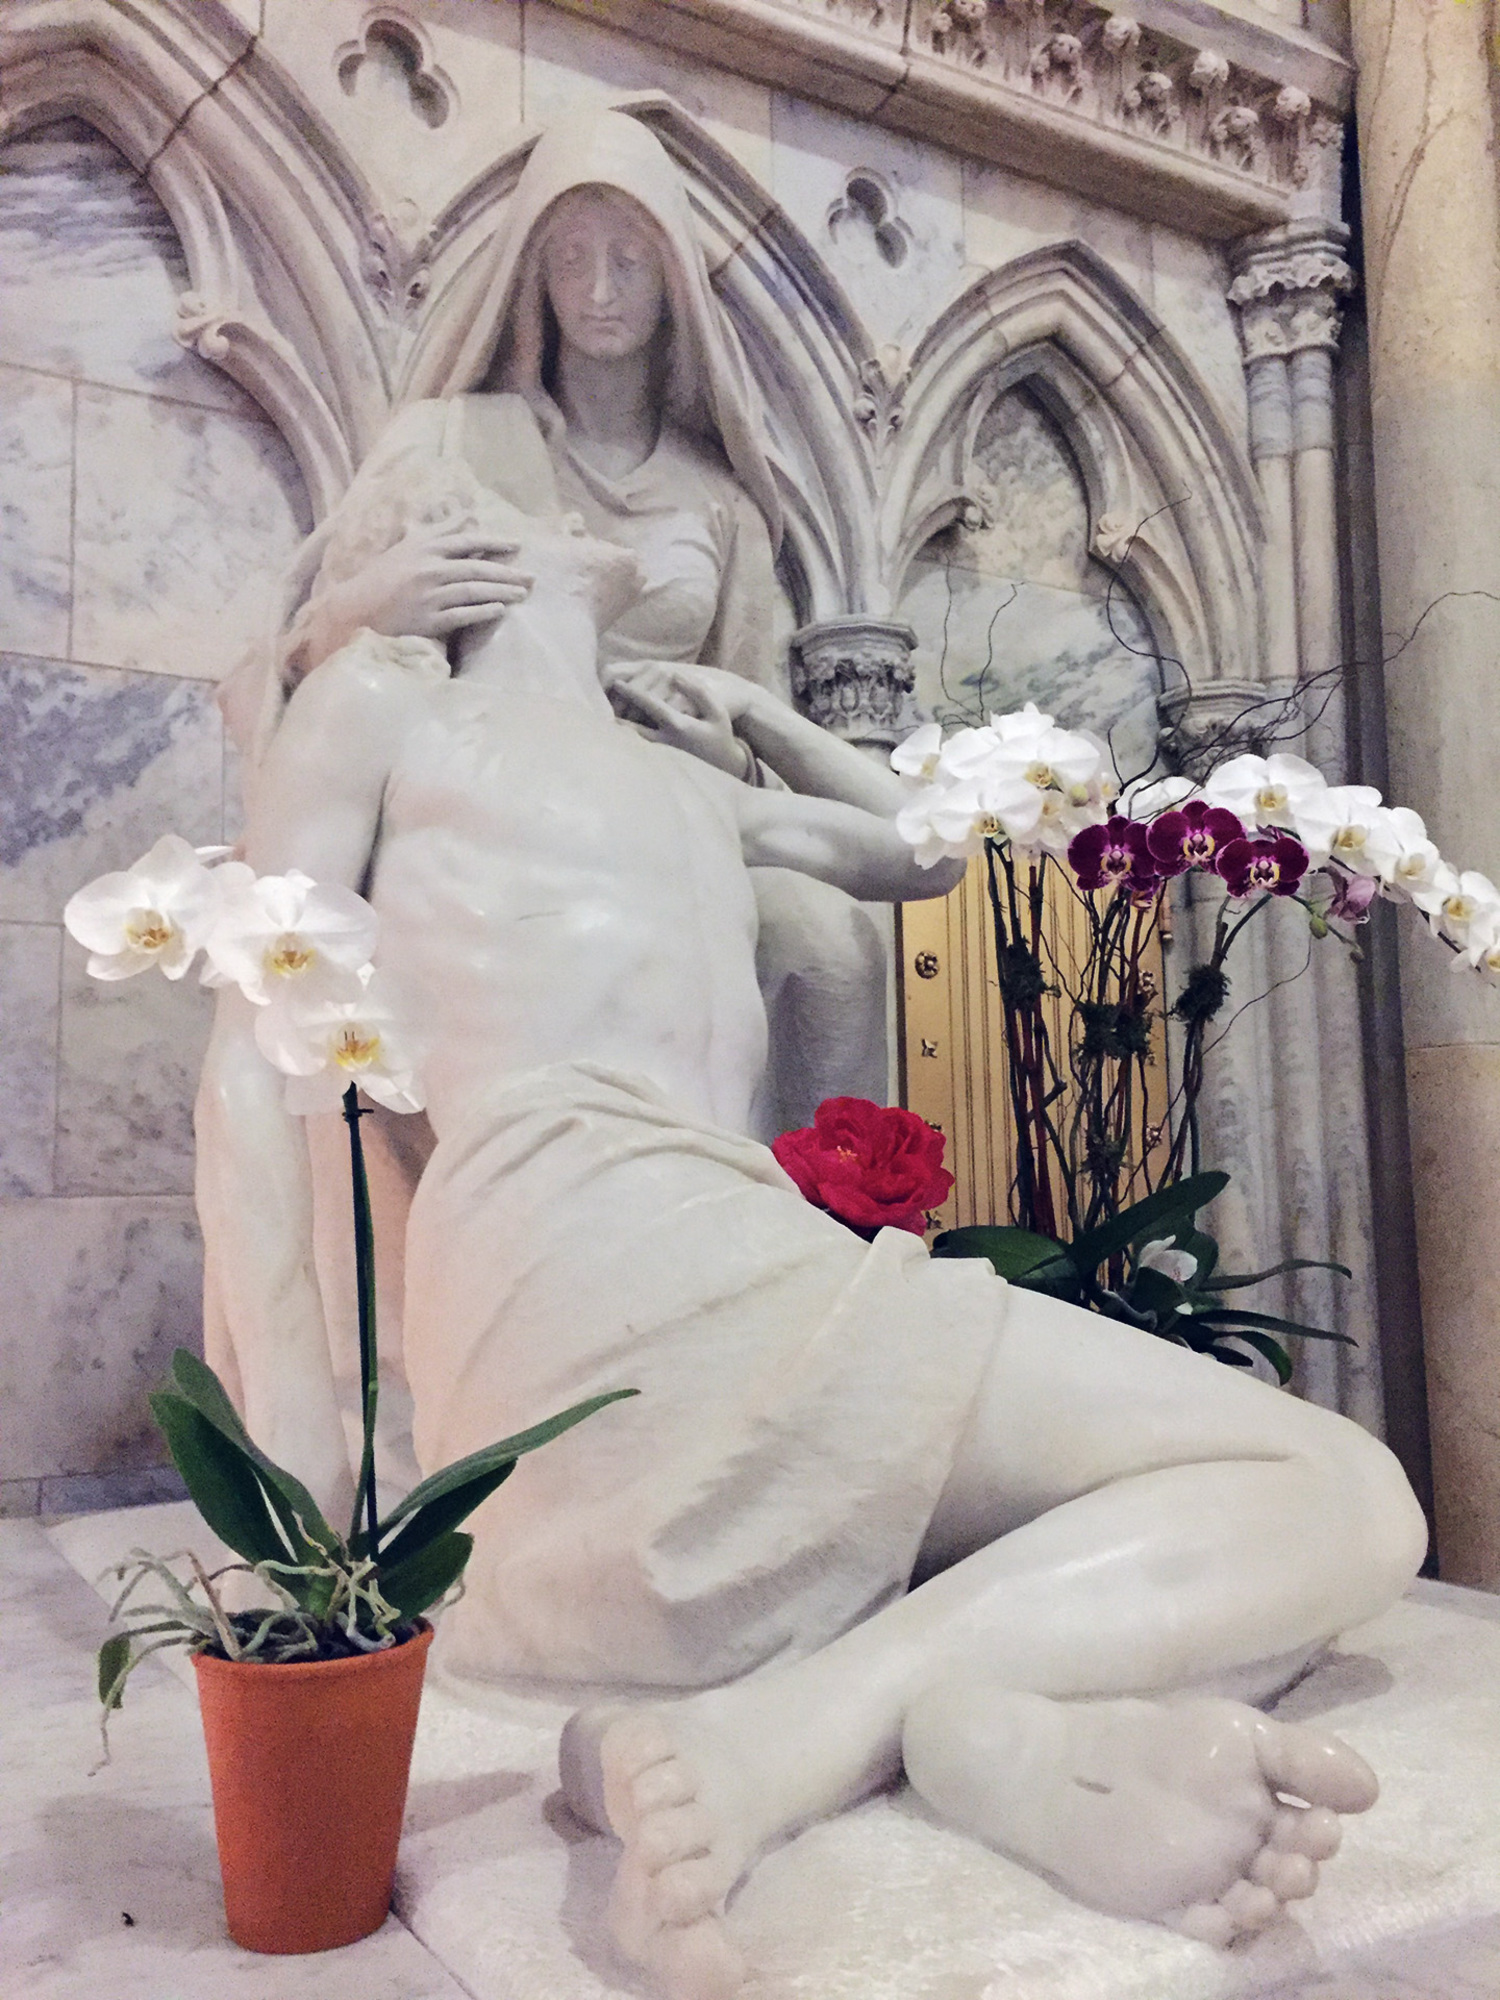 St. Patrick's Cathedral Restored Marble Sculptures